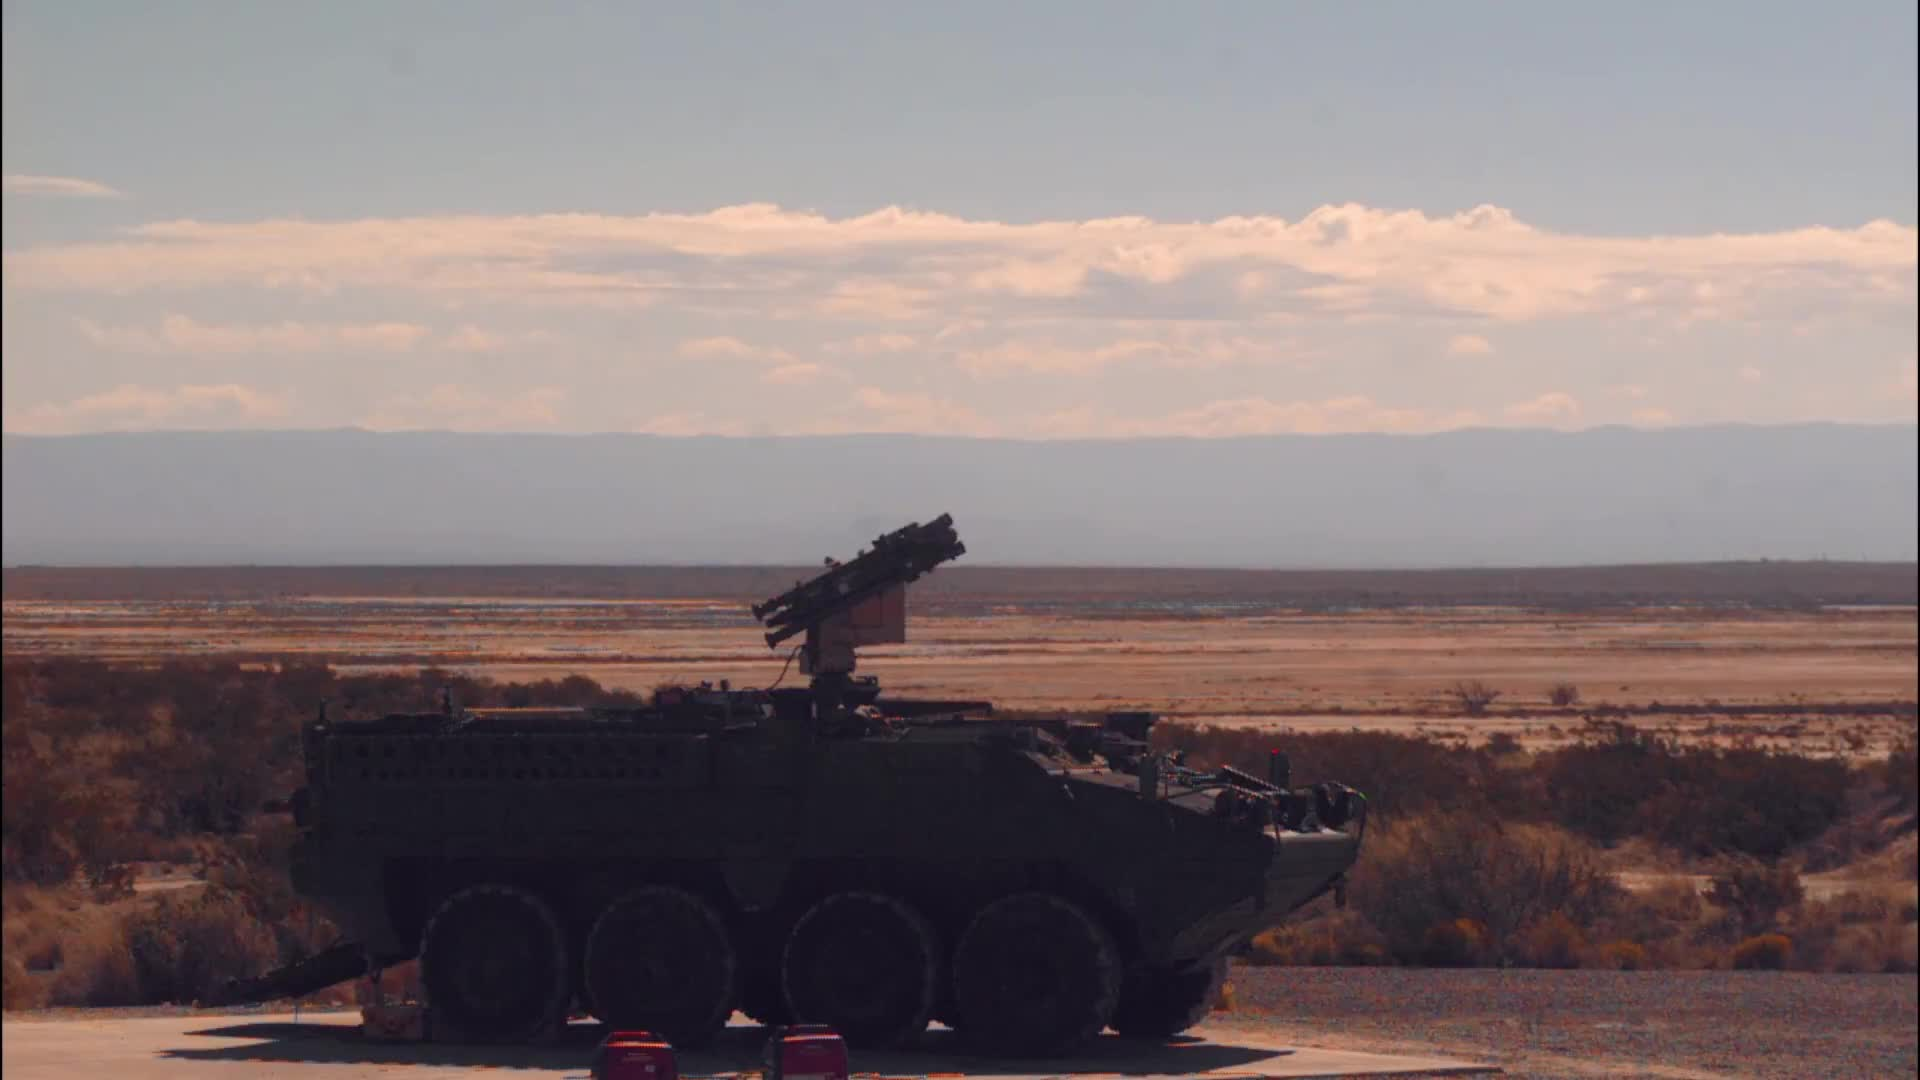 ATEC, Army Test and Evaluation Command, M-SHORAD, Missile Launch, Stinger Missile, Stryker, WSMR, White Sands Missile Range, militarygfys, Stinger on Stryker  GIFs